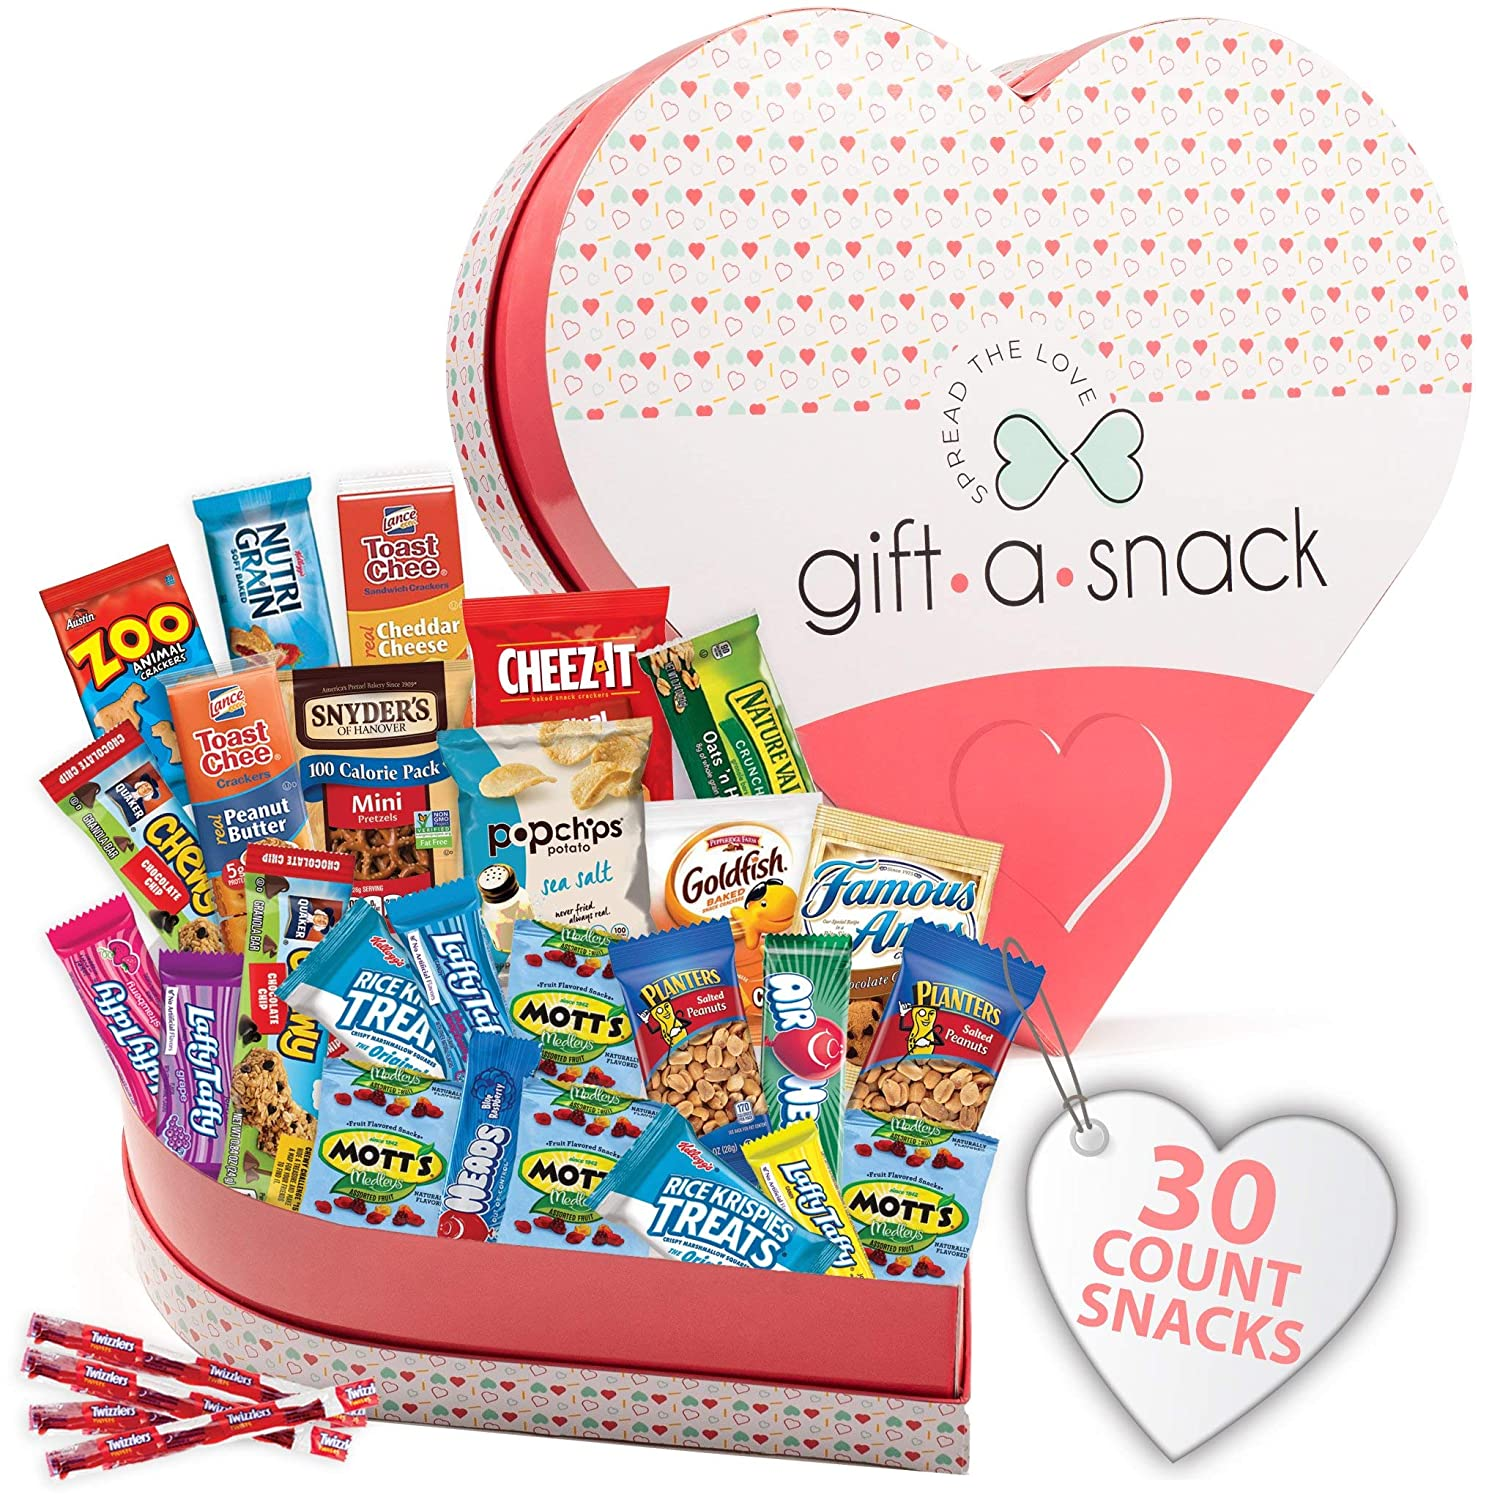 Heart Shaped Snack Box Variety Pack (30 Count) Candy Gift Basket - College Student Care Package, Prime Food Arrangement Chips, Cookies, Bars - Ultimate Birthday Treat for Women, Men, Adults, Teen, Kid